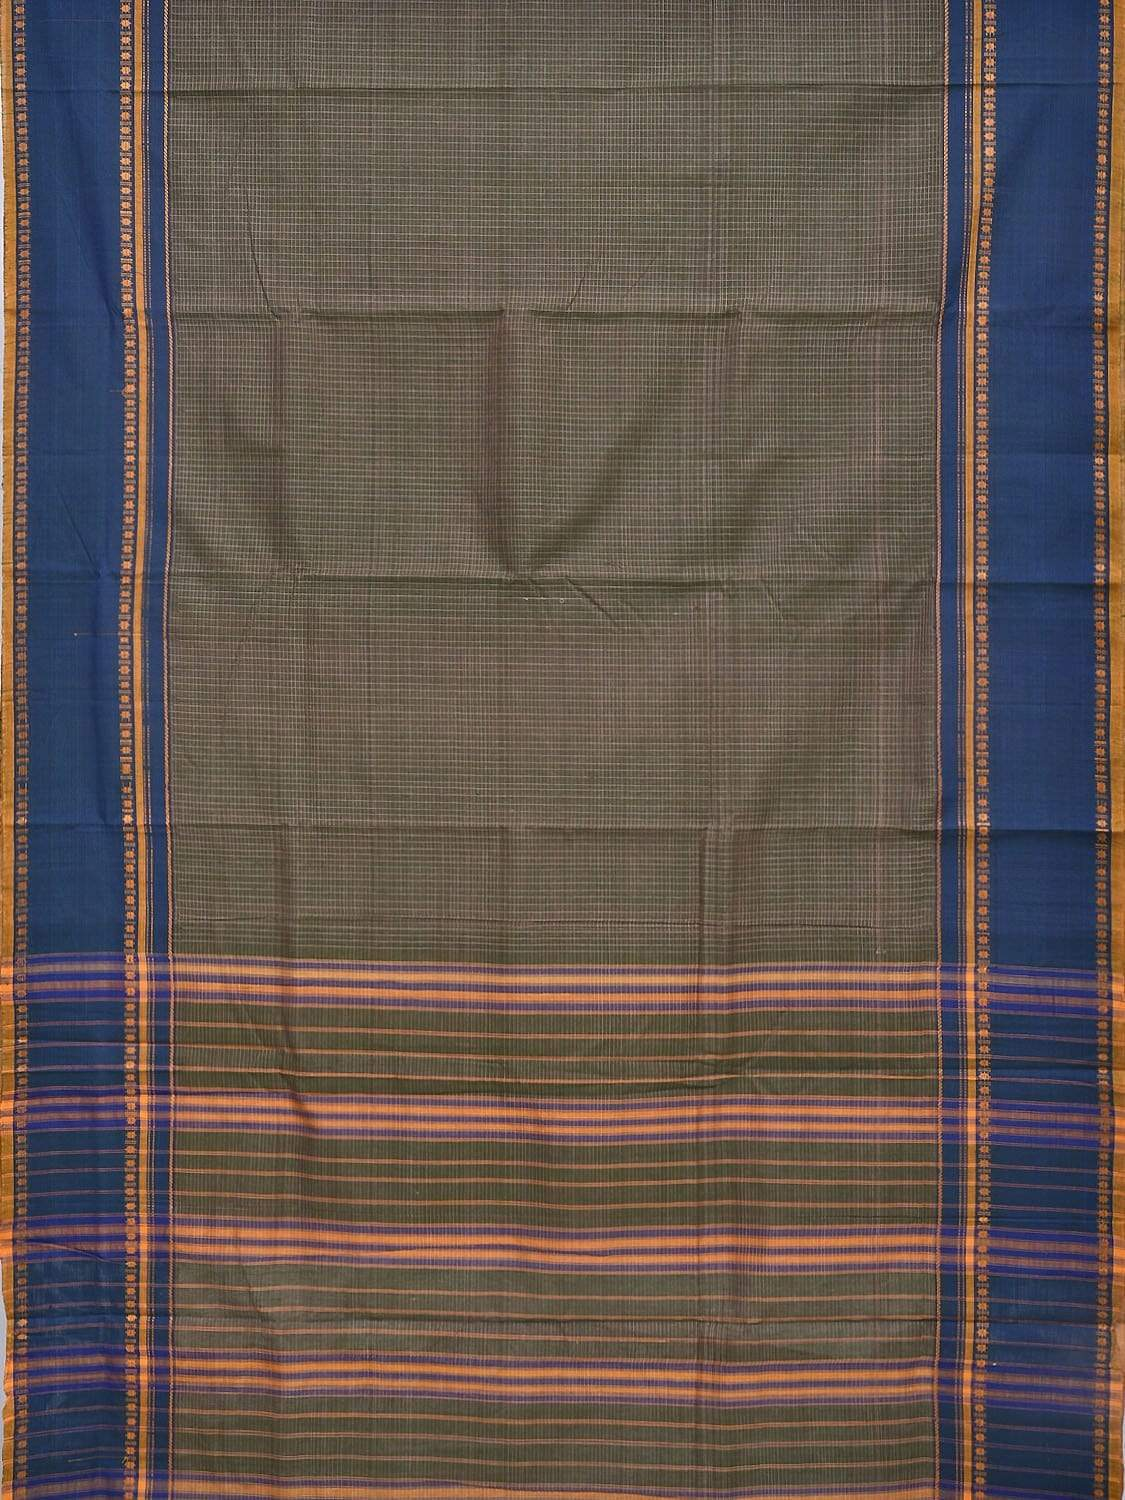 Olive Narayanpet Cotton Handloom Saree with Checks Design No Blouse np0229